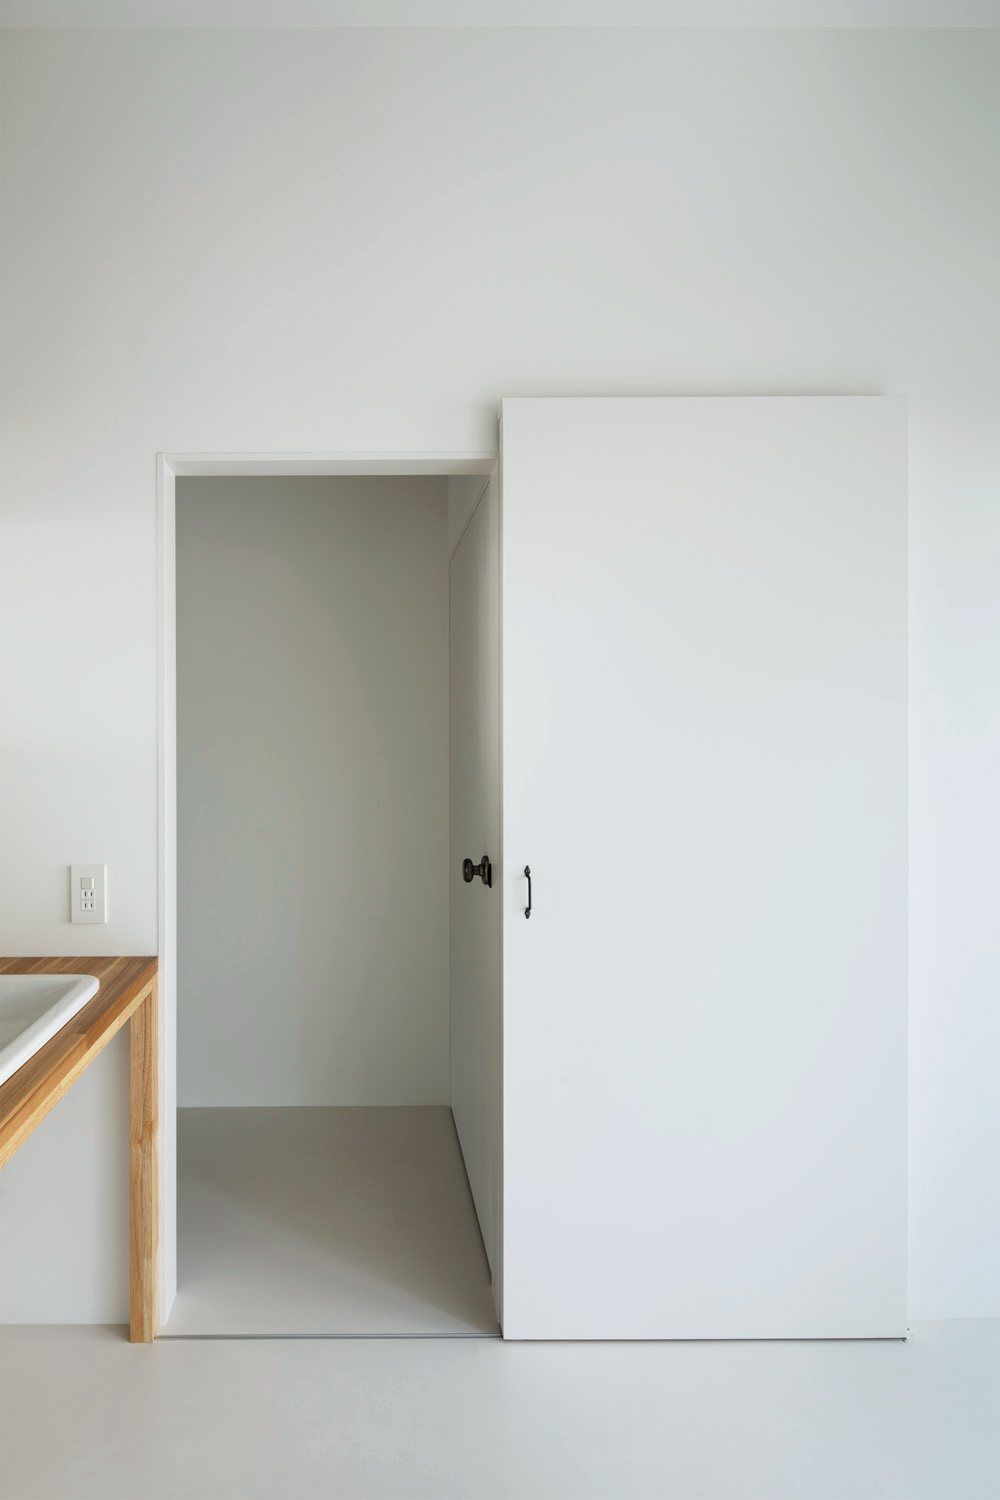 Sliding Door Soja O By Kaniue Architects # Muebles Cocina Sojoa